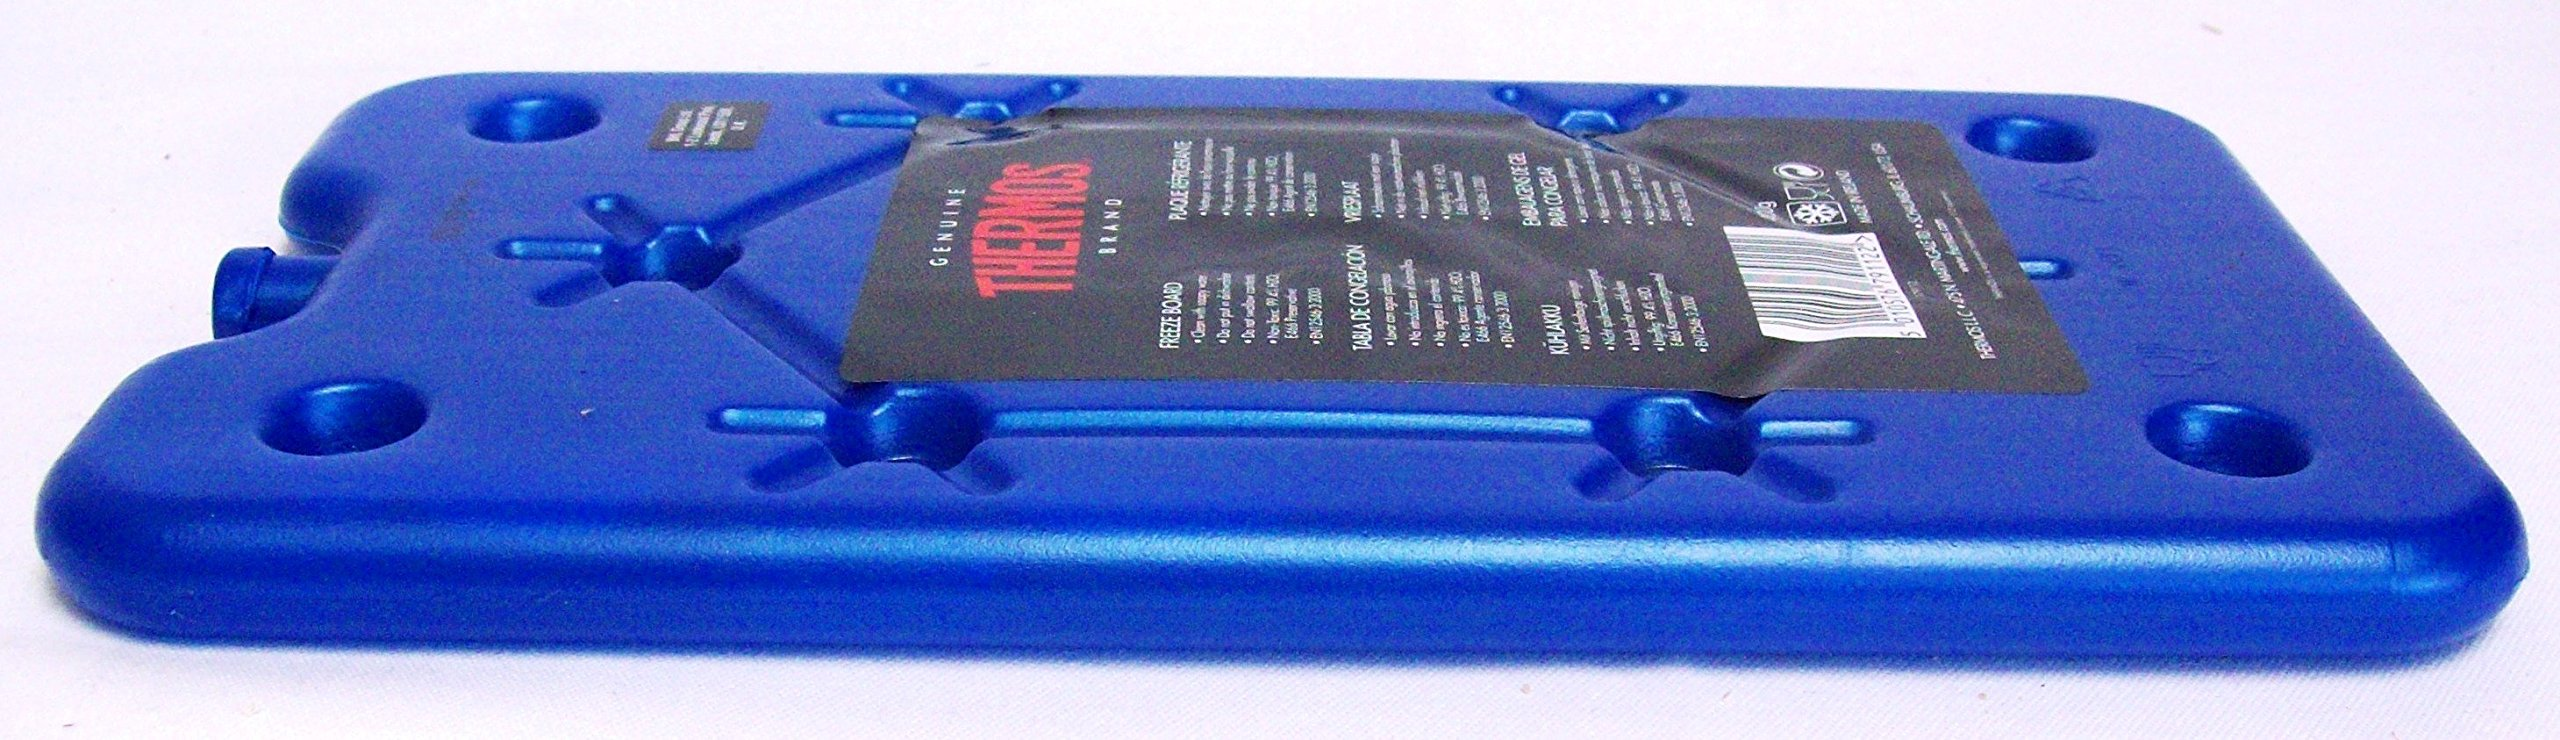 Thermos Freeze Board 800 g